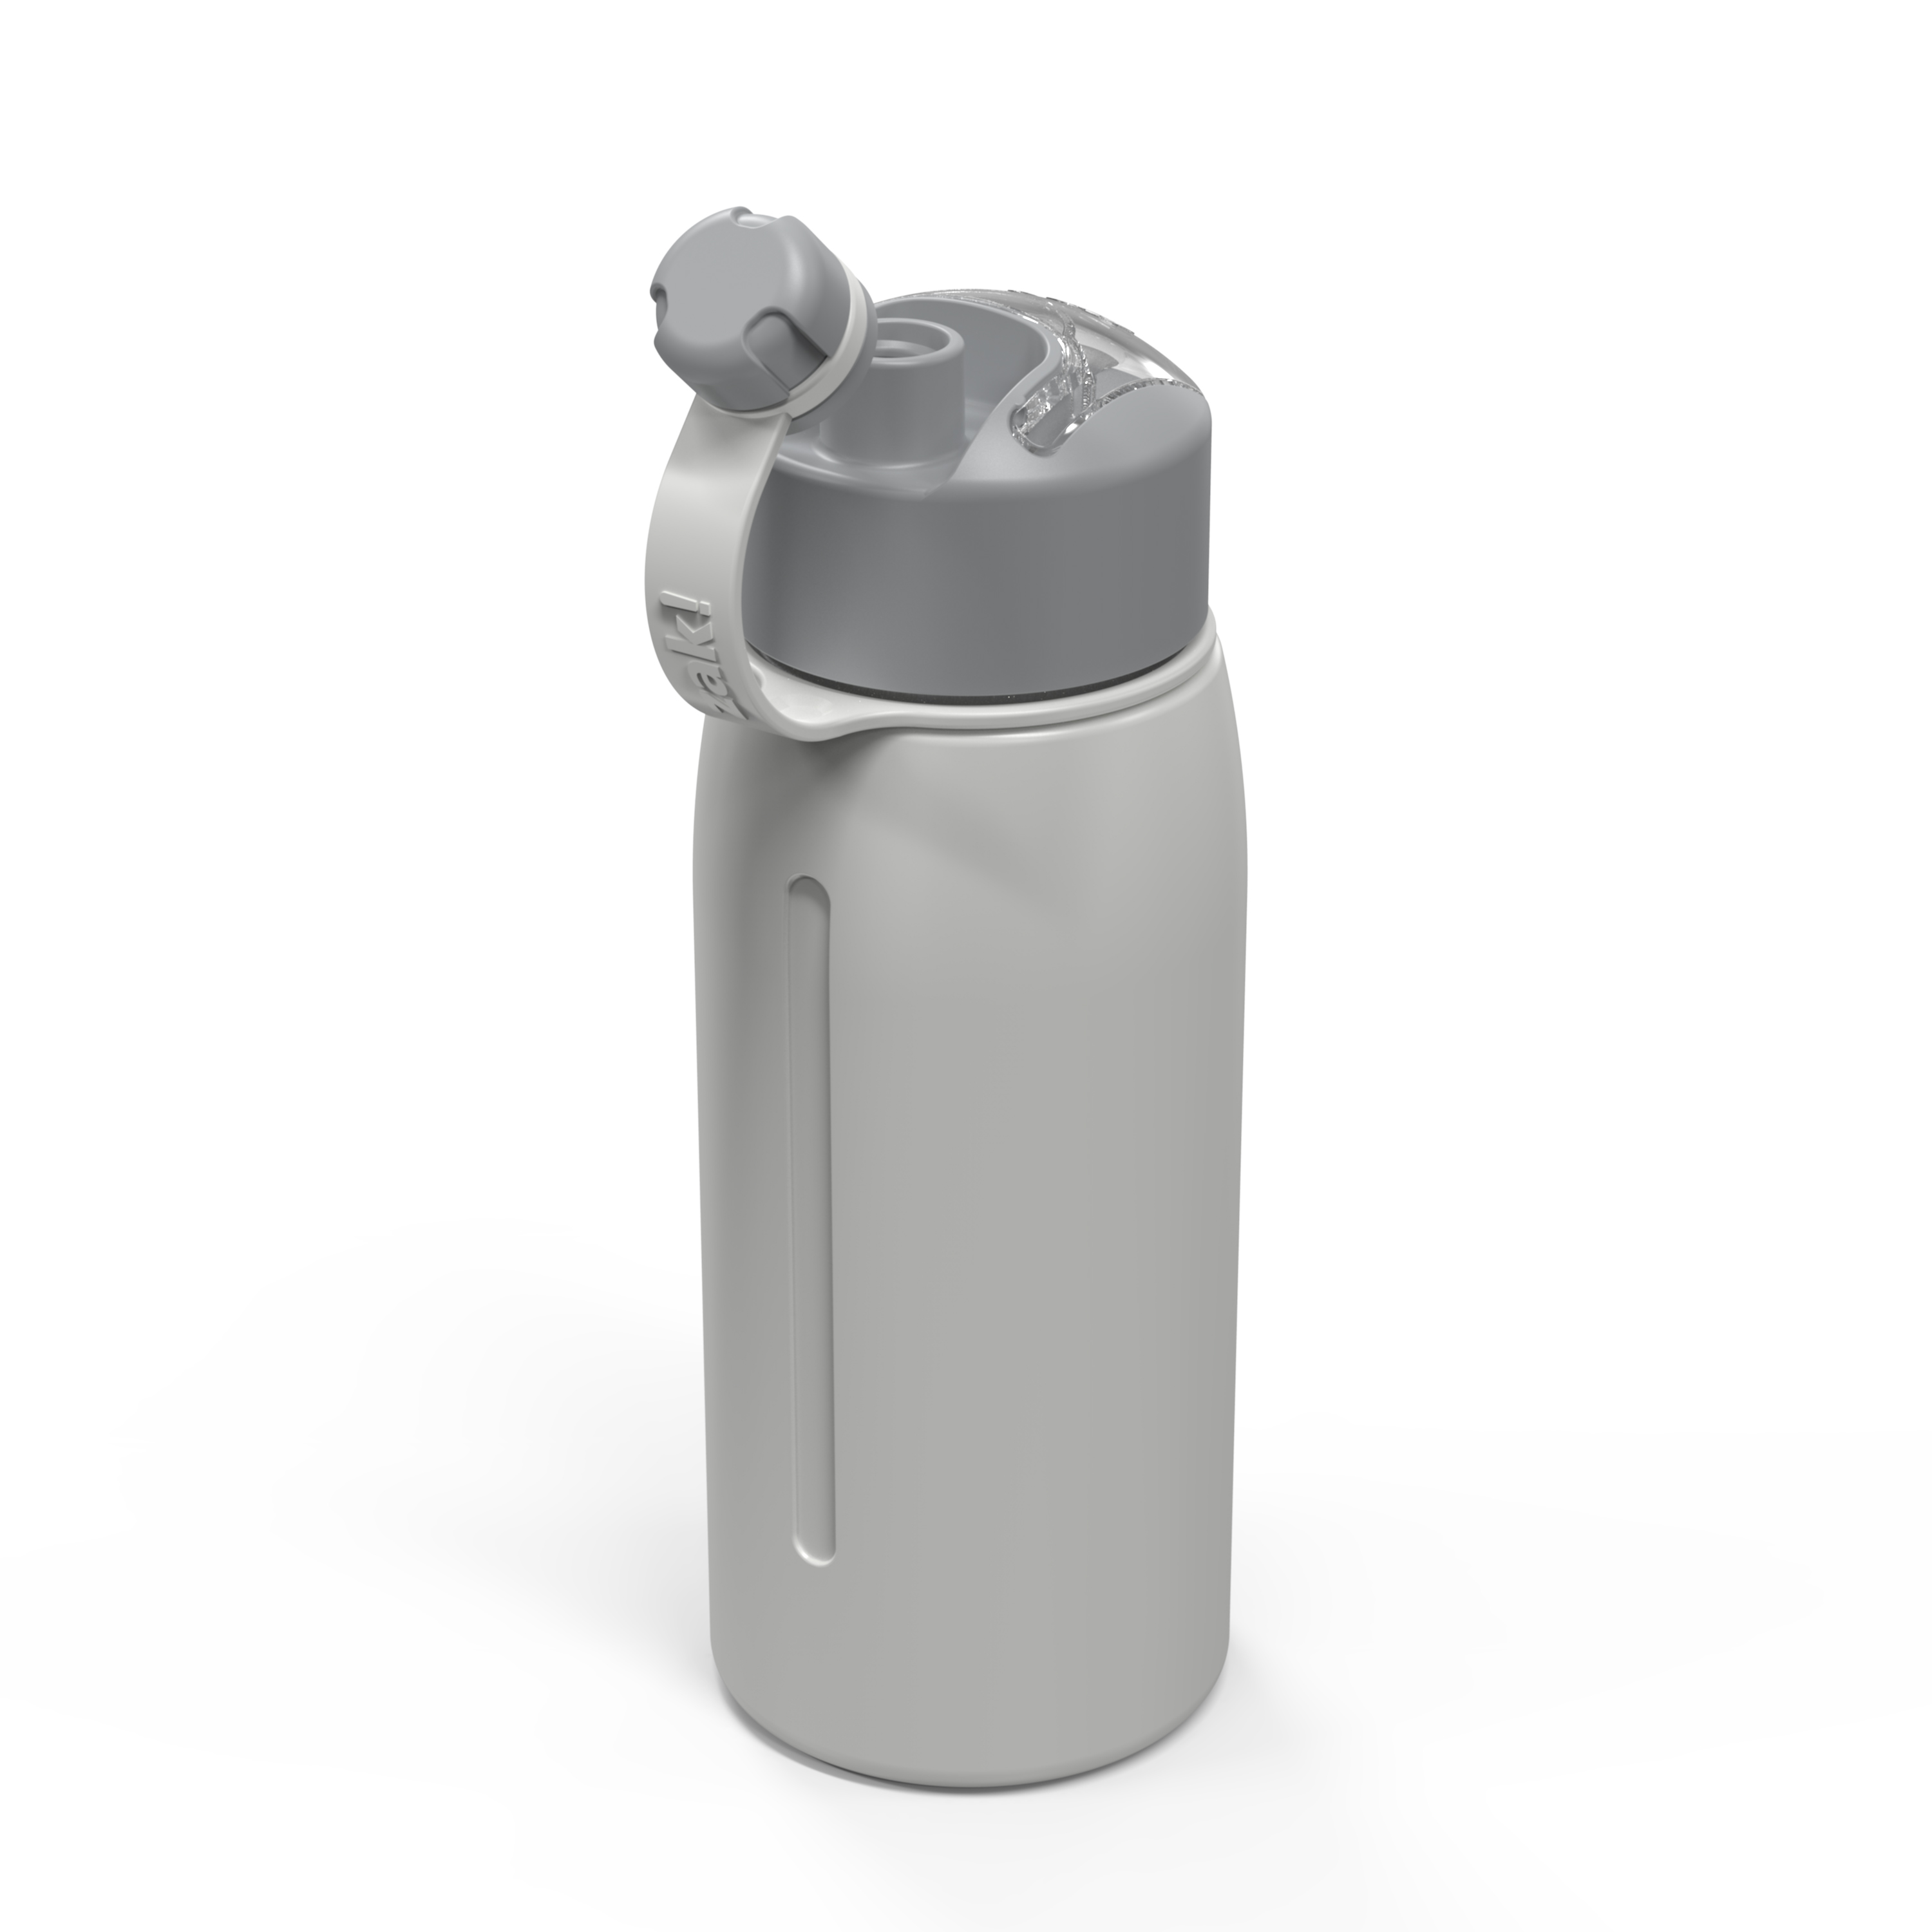 Genesis 24 ounce Vacuum Insulated Stainless Steel Tumbler, Gray slideshow image 6